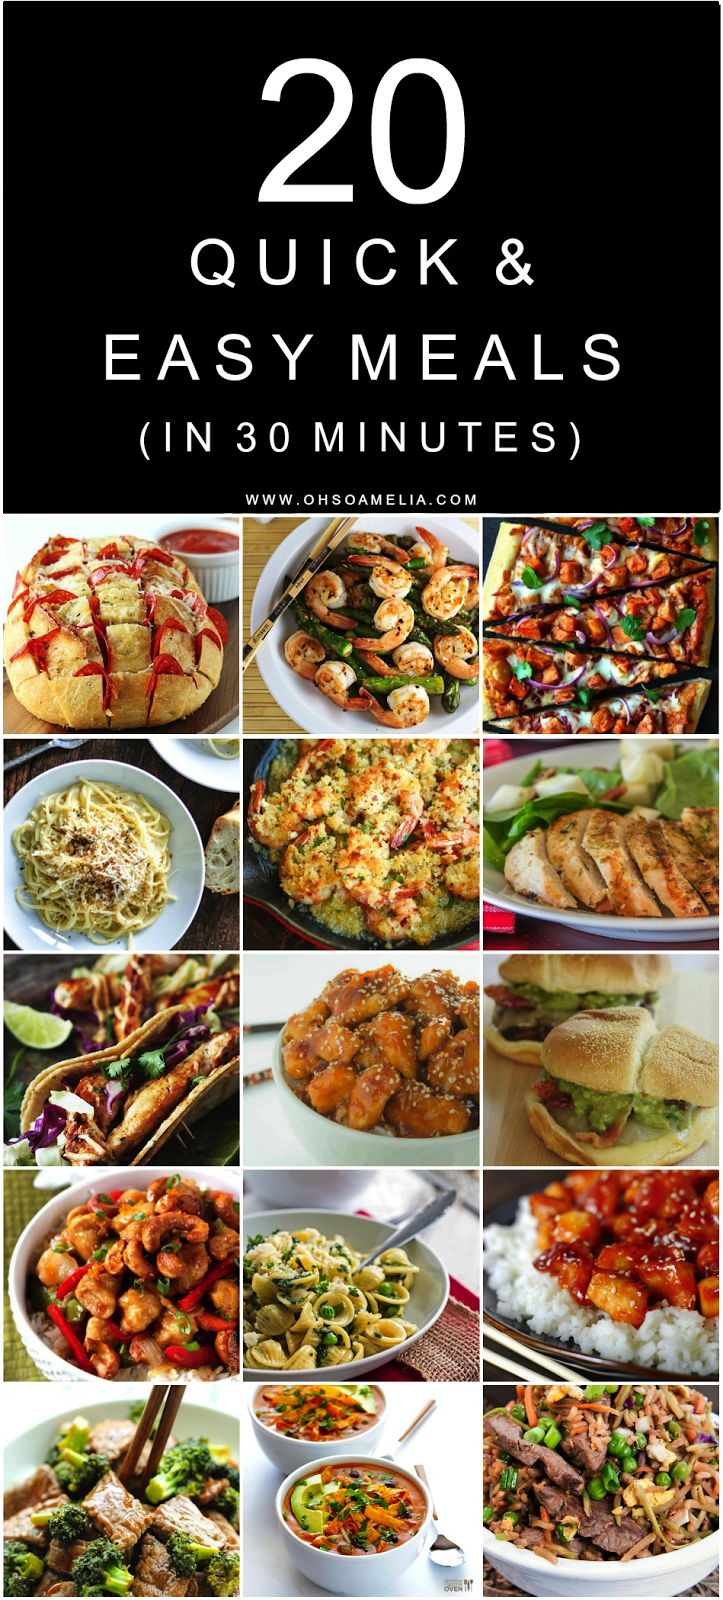 Here are 20 Quick & Easy Meals in 30 Minutes or Less which are great for busy mums!